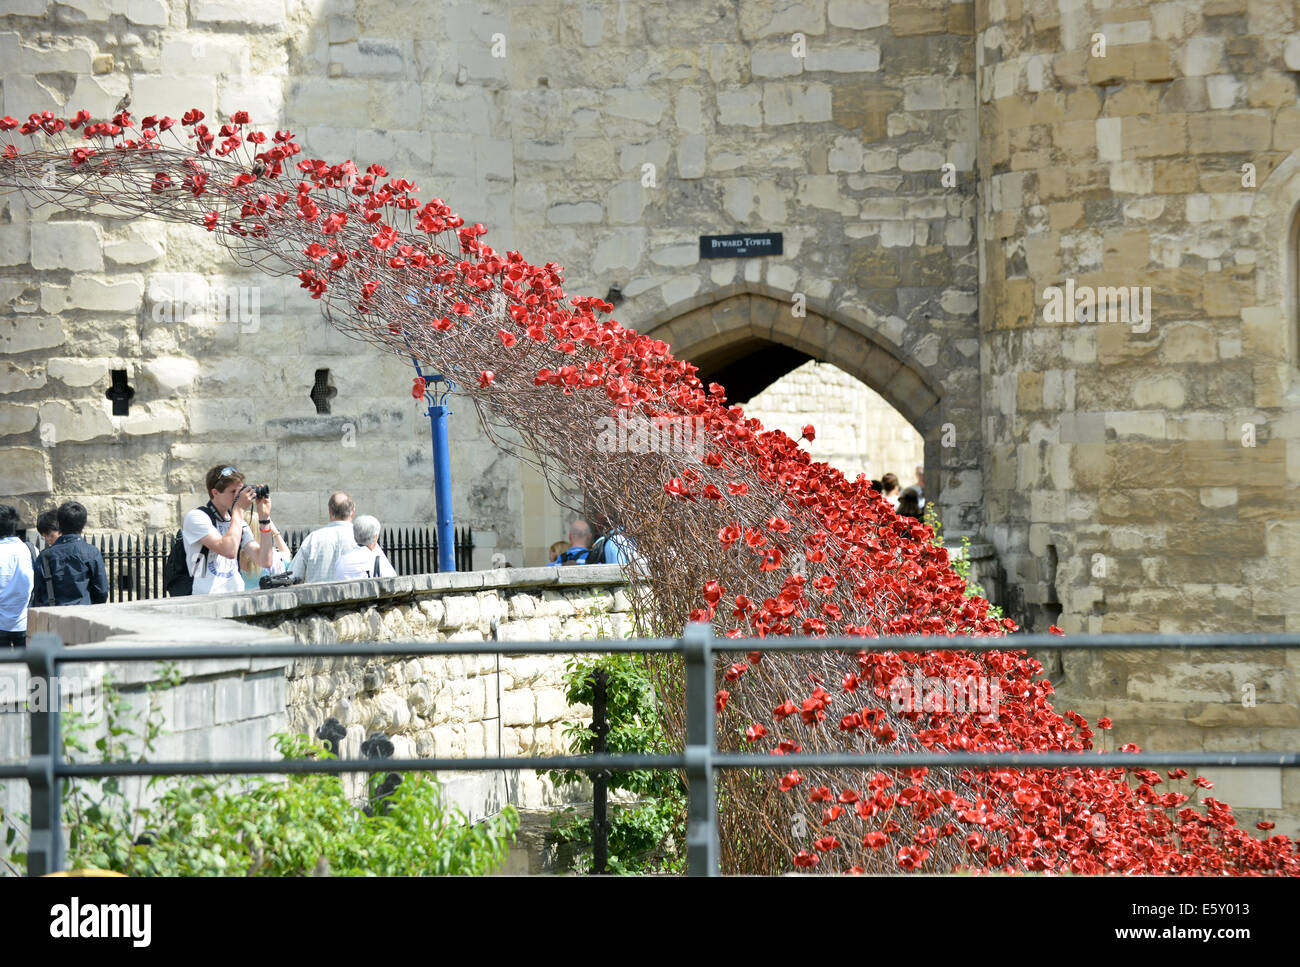 Bloodswept Lands and Seas of Red, thousands of ceramic poppies by artist Paul Cummins at the Tower of London WW1 Stock Photo